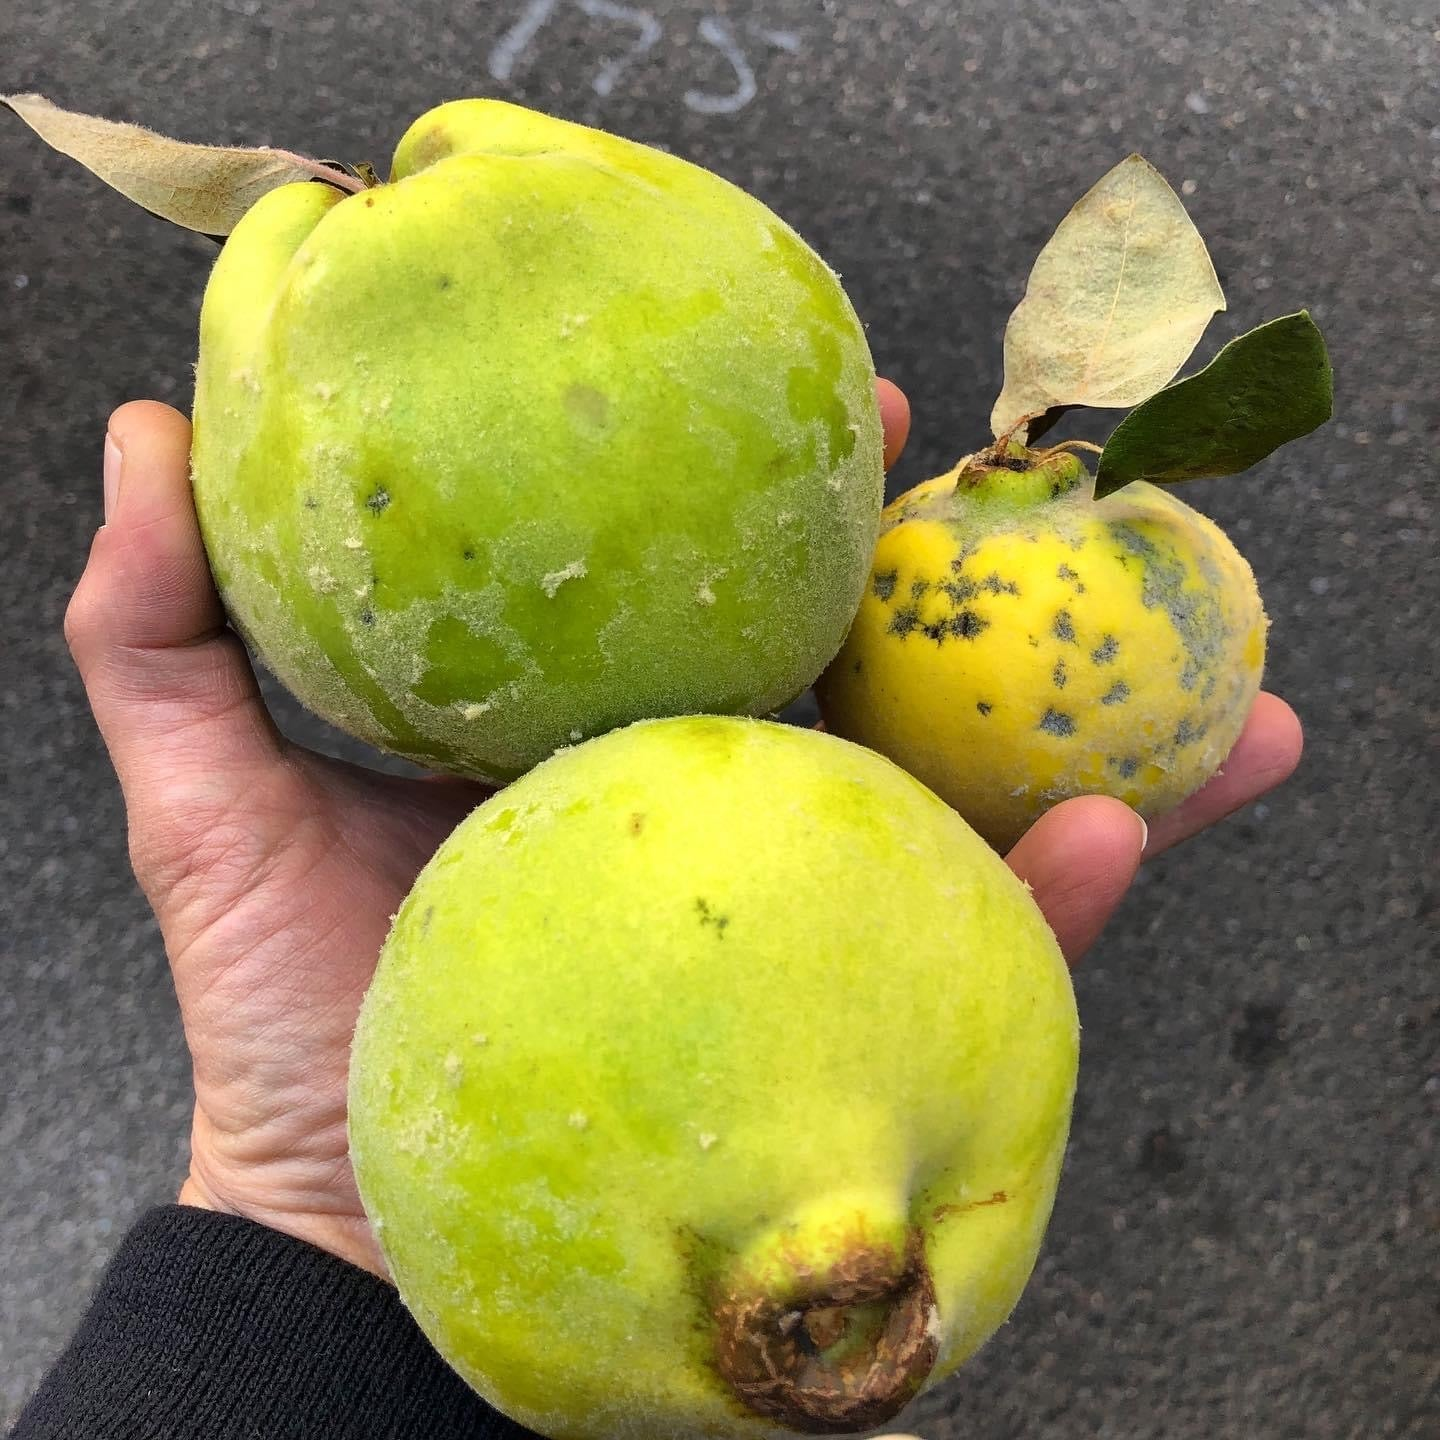 Quince (local), Lb